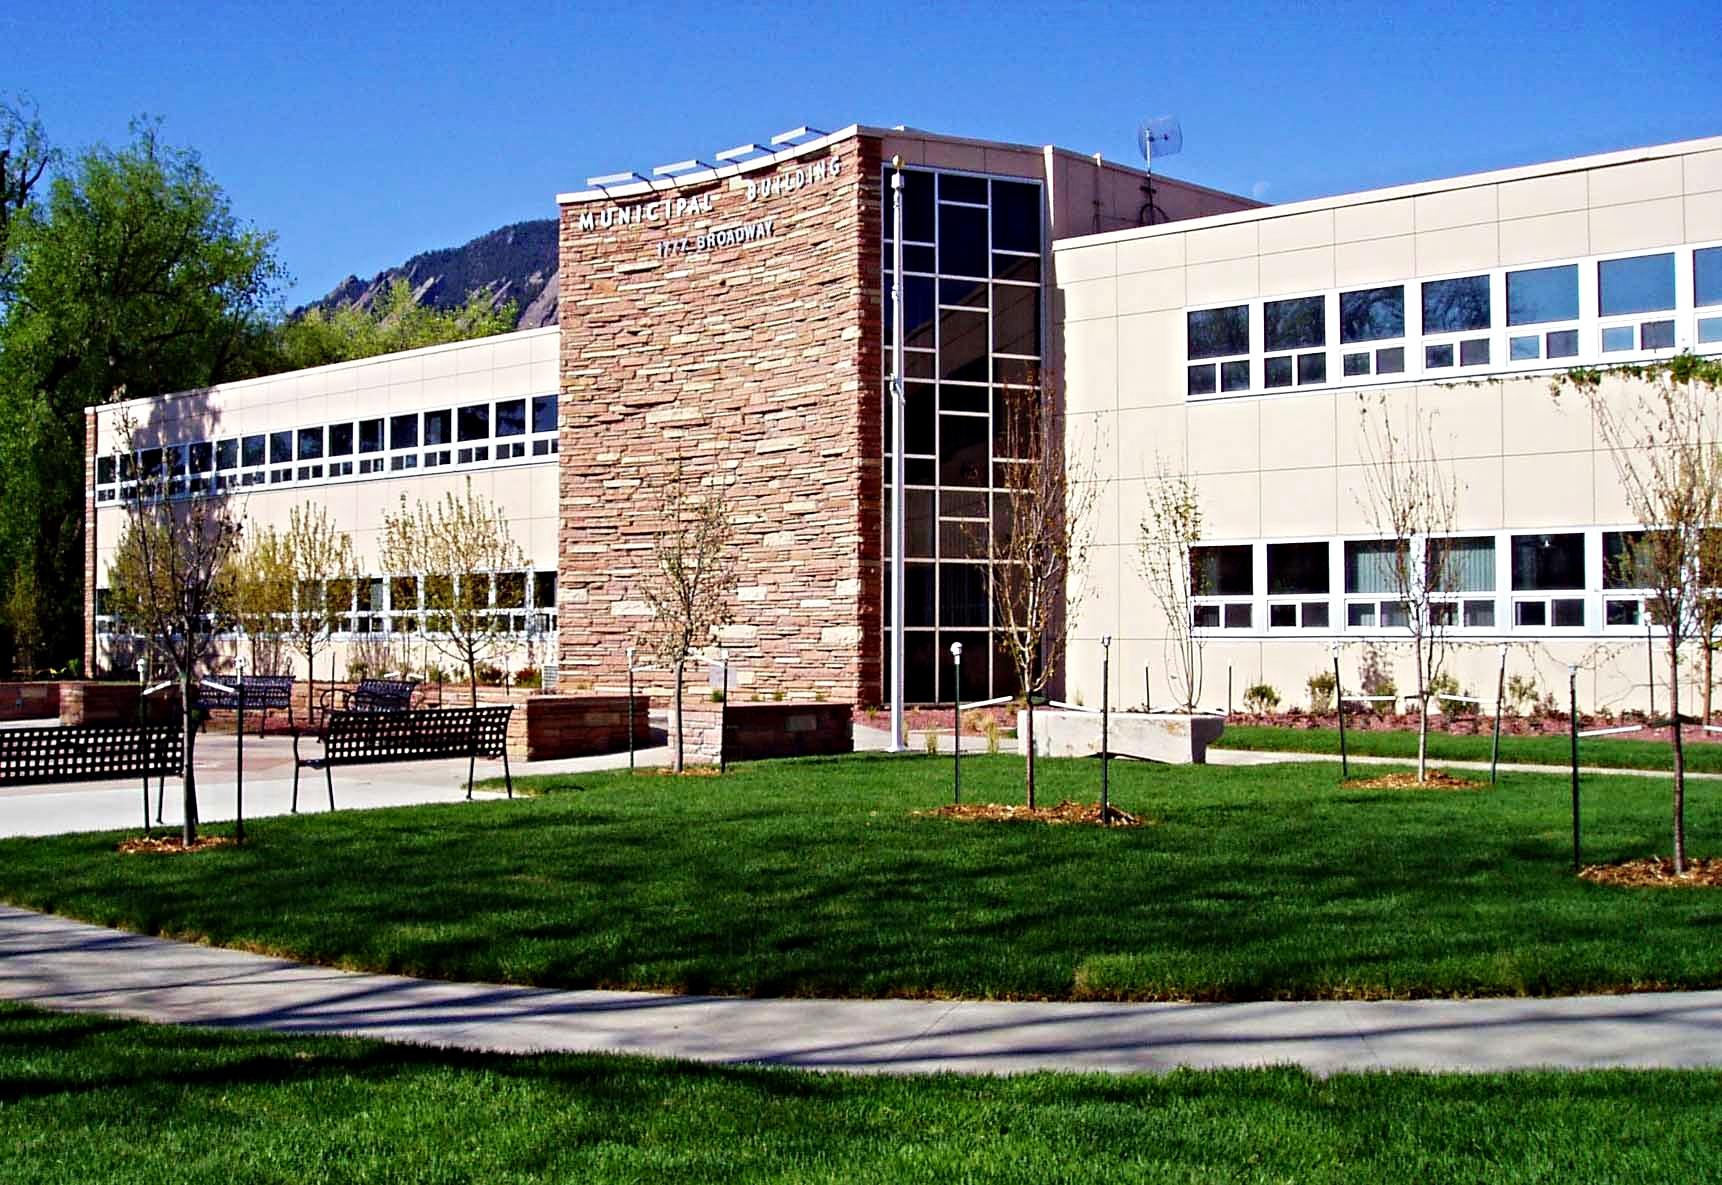 BOULDER MUNICIPAL BUILDING -  Replacement of site utilities, concrete flat work, artistic pillars and front entry.